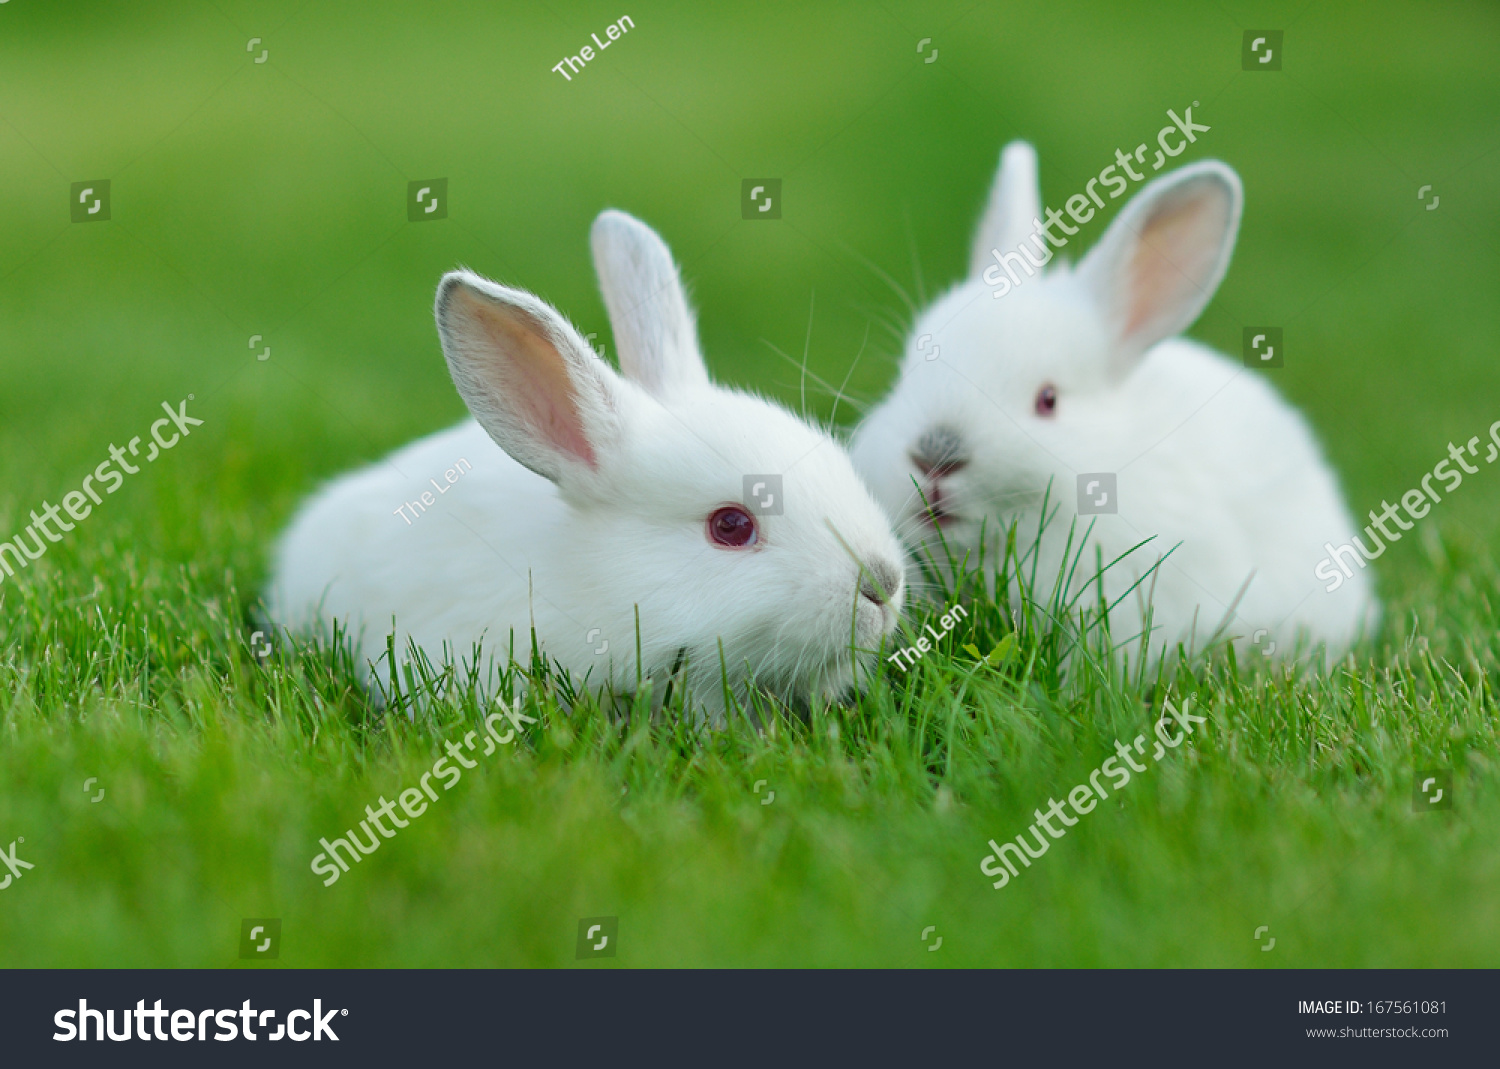 File:White bunny.jpg |Awesome Baby White Bunnies